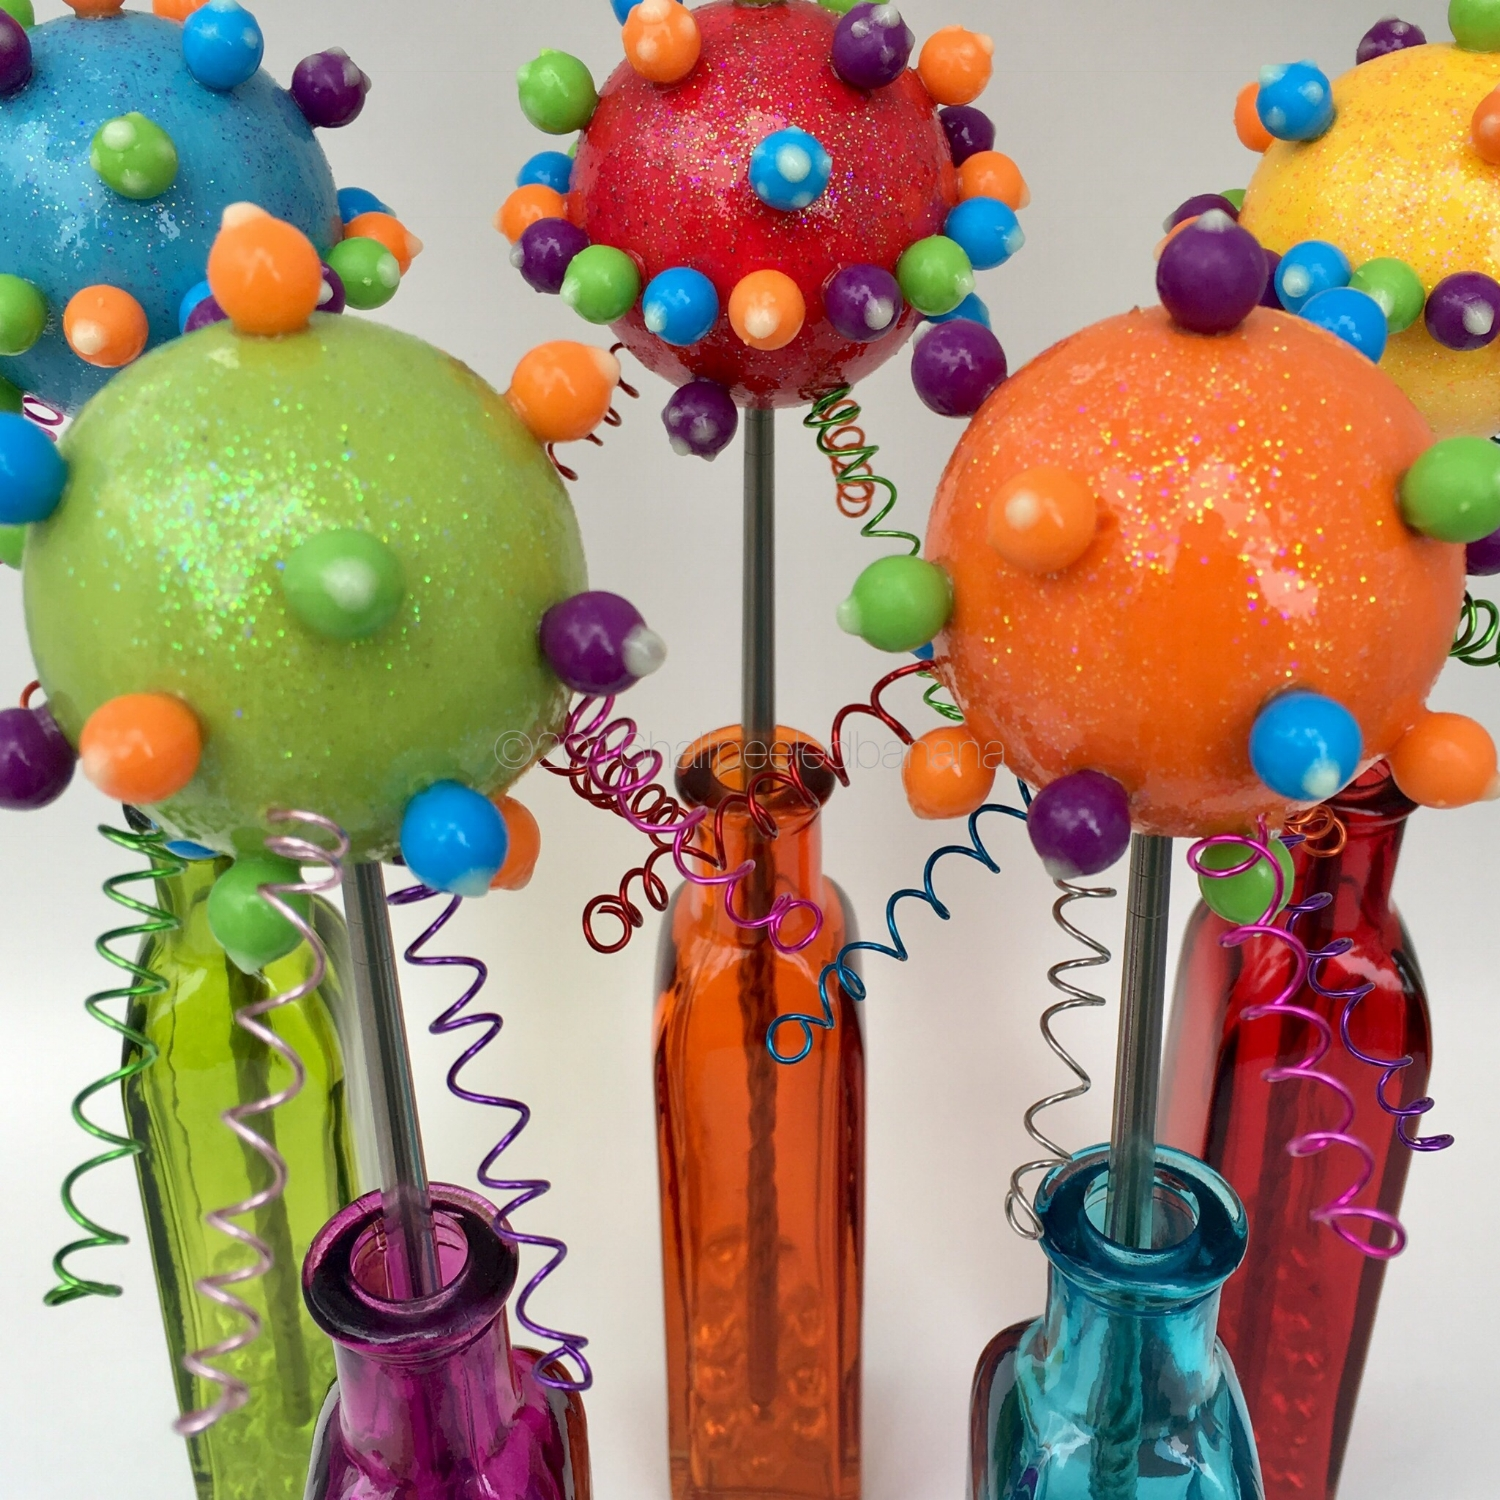 party @ your house! space inspired flowers whooping it up!